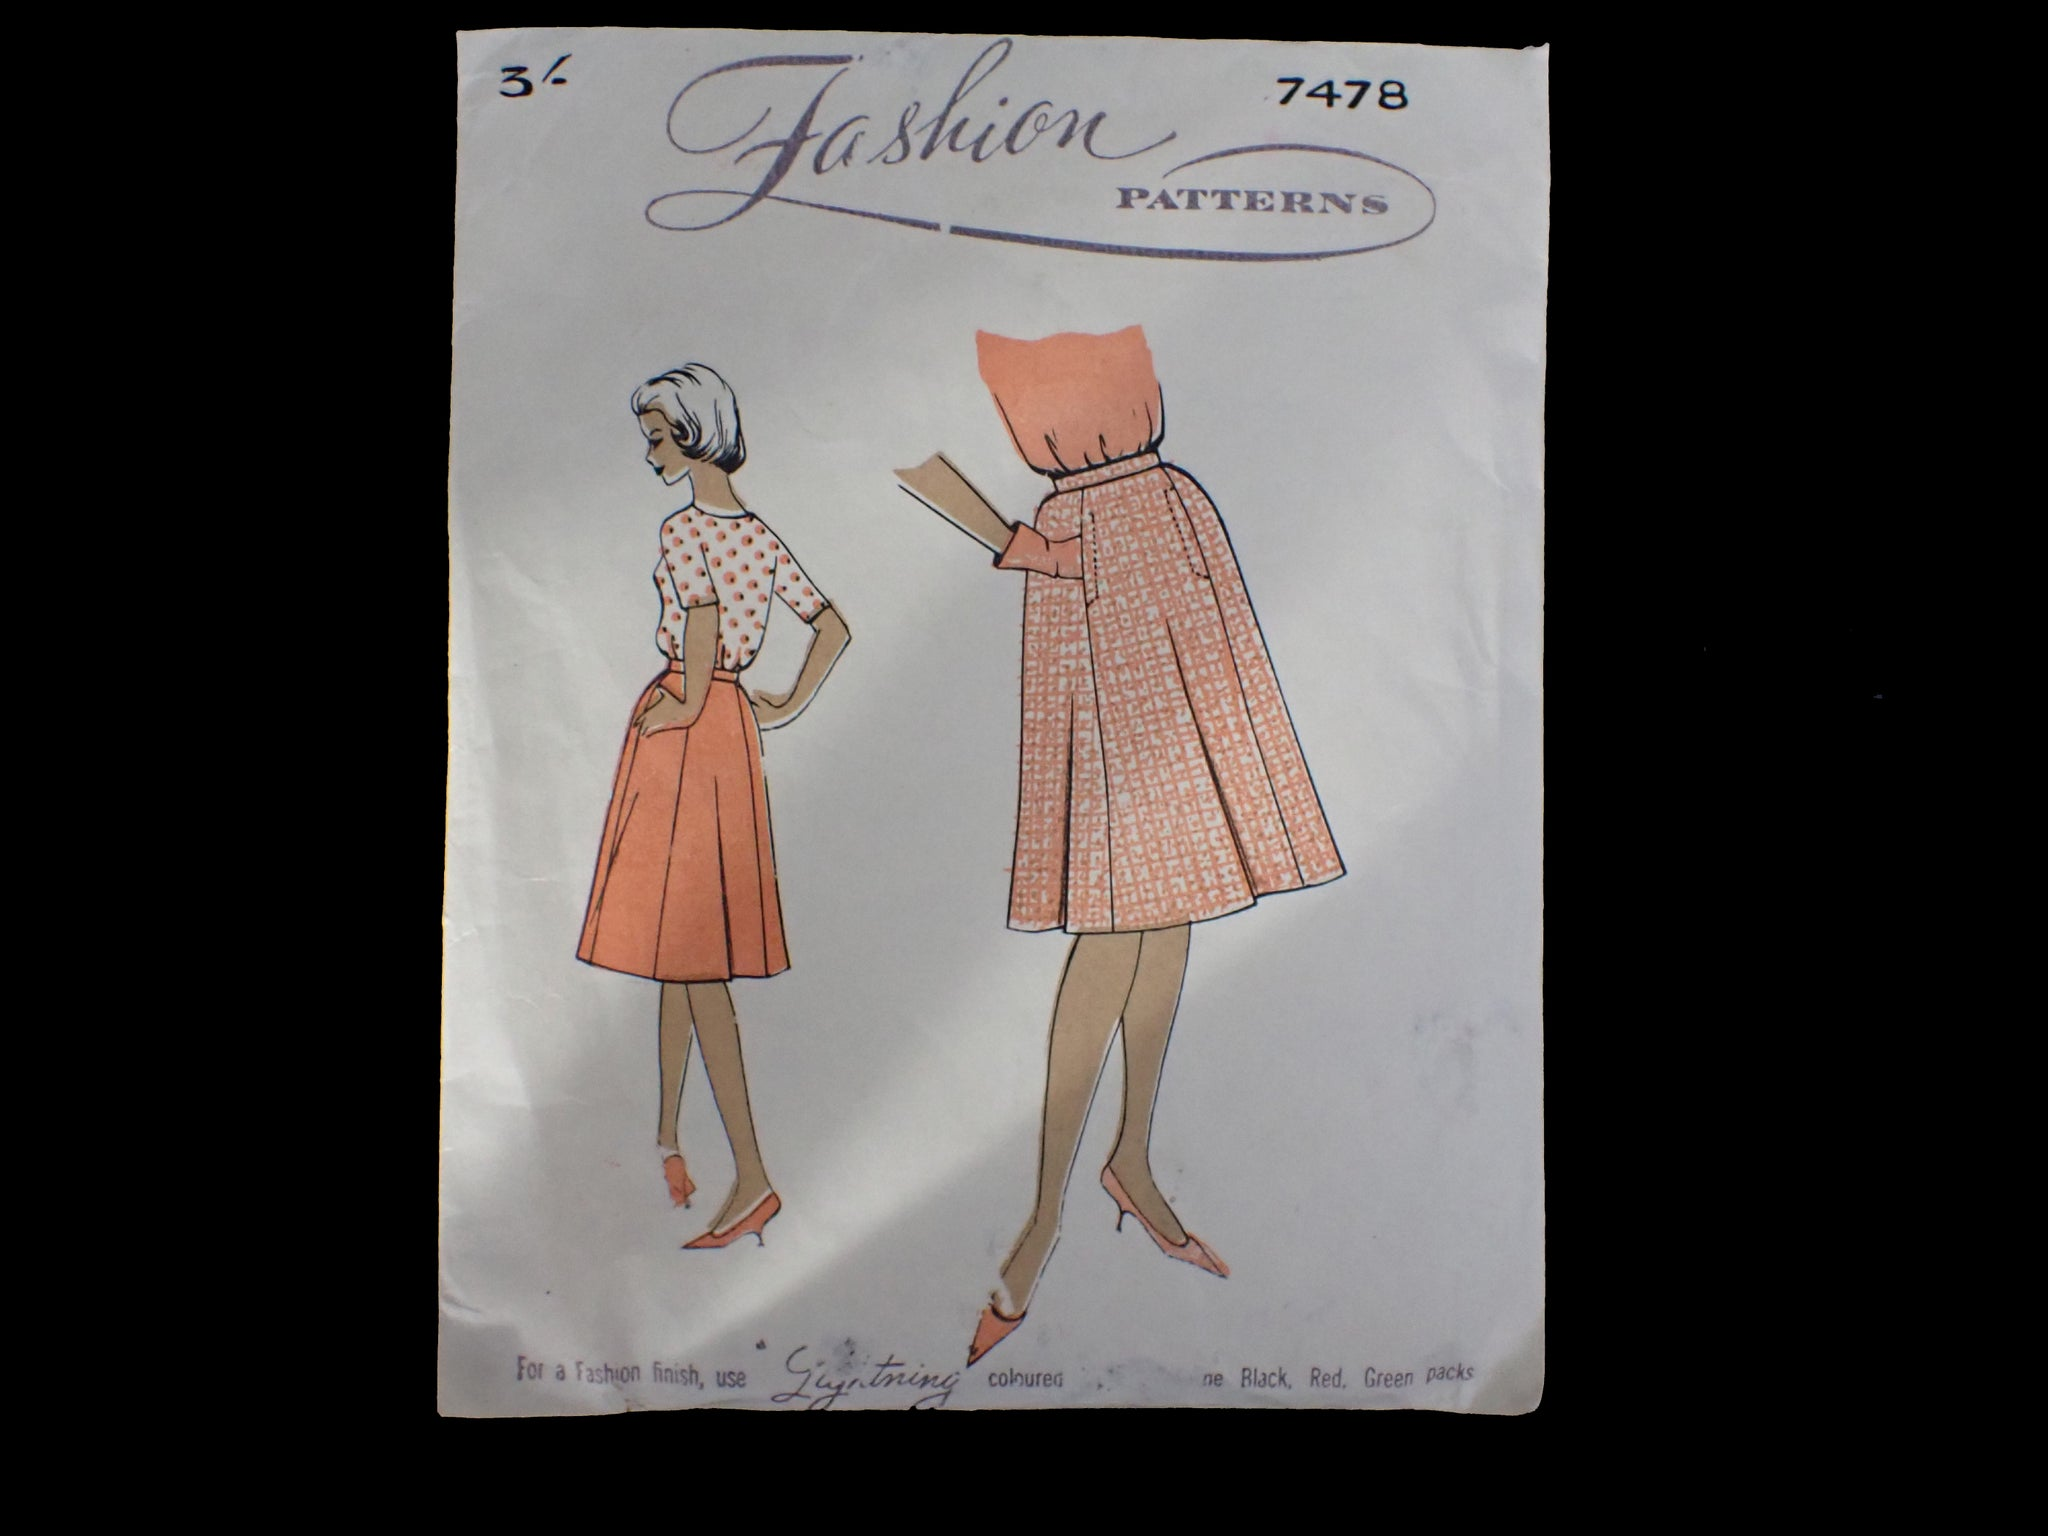 Vintage sewing pattern in packet